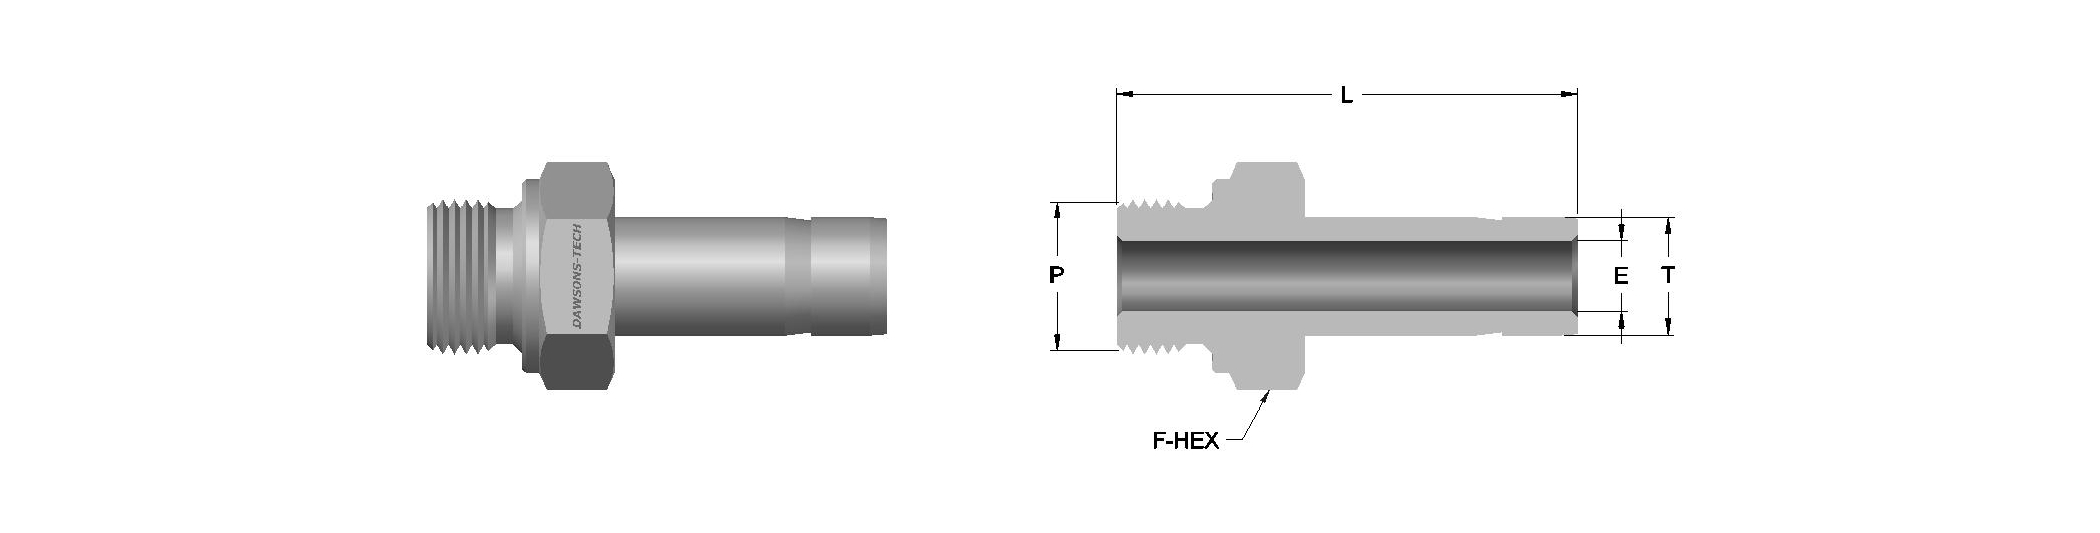 03 Male Adapter (BSP) (According to DIN 3852 Part 2 Form B)